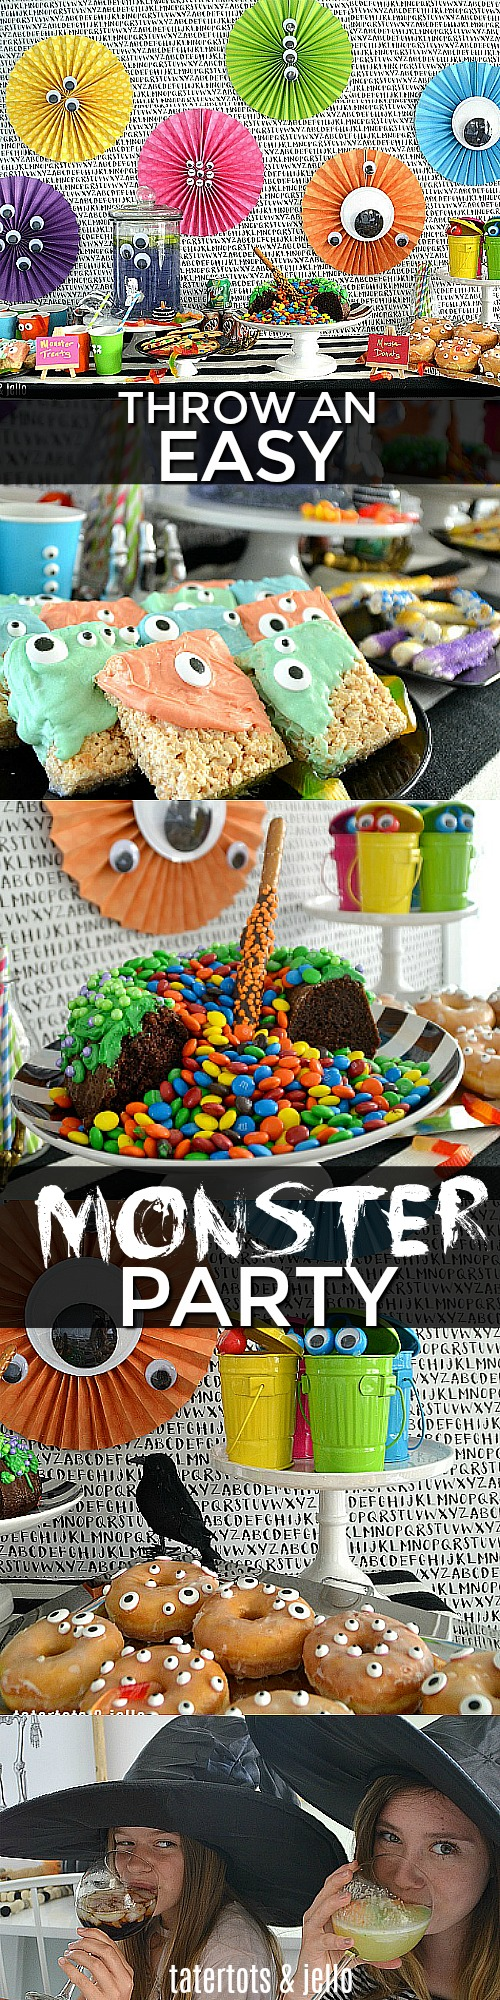 Throw an easy Monster party - food, decorations and more Halloween